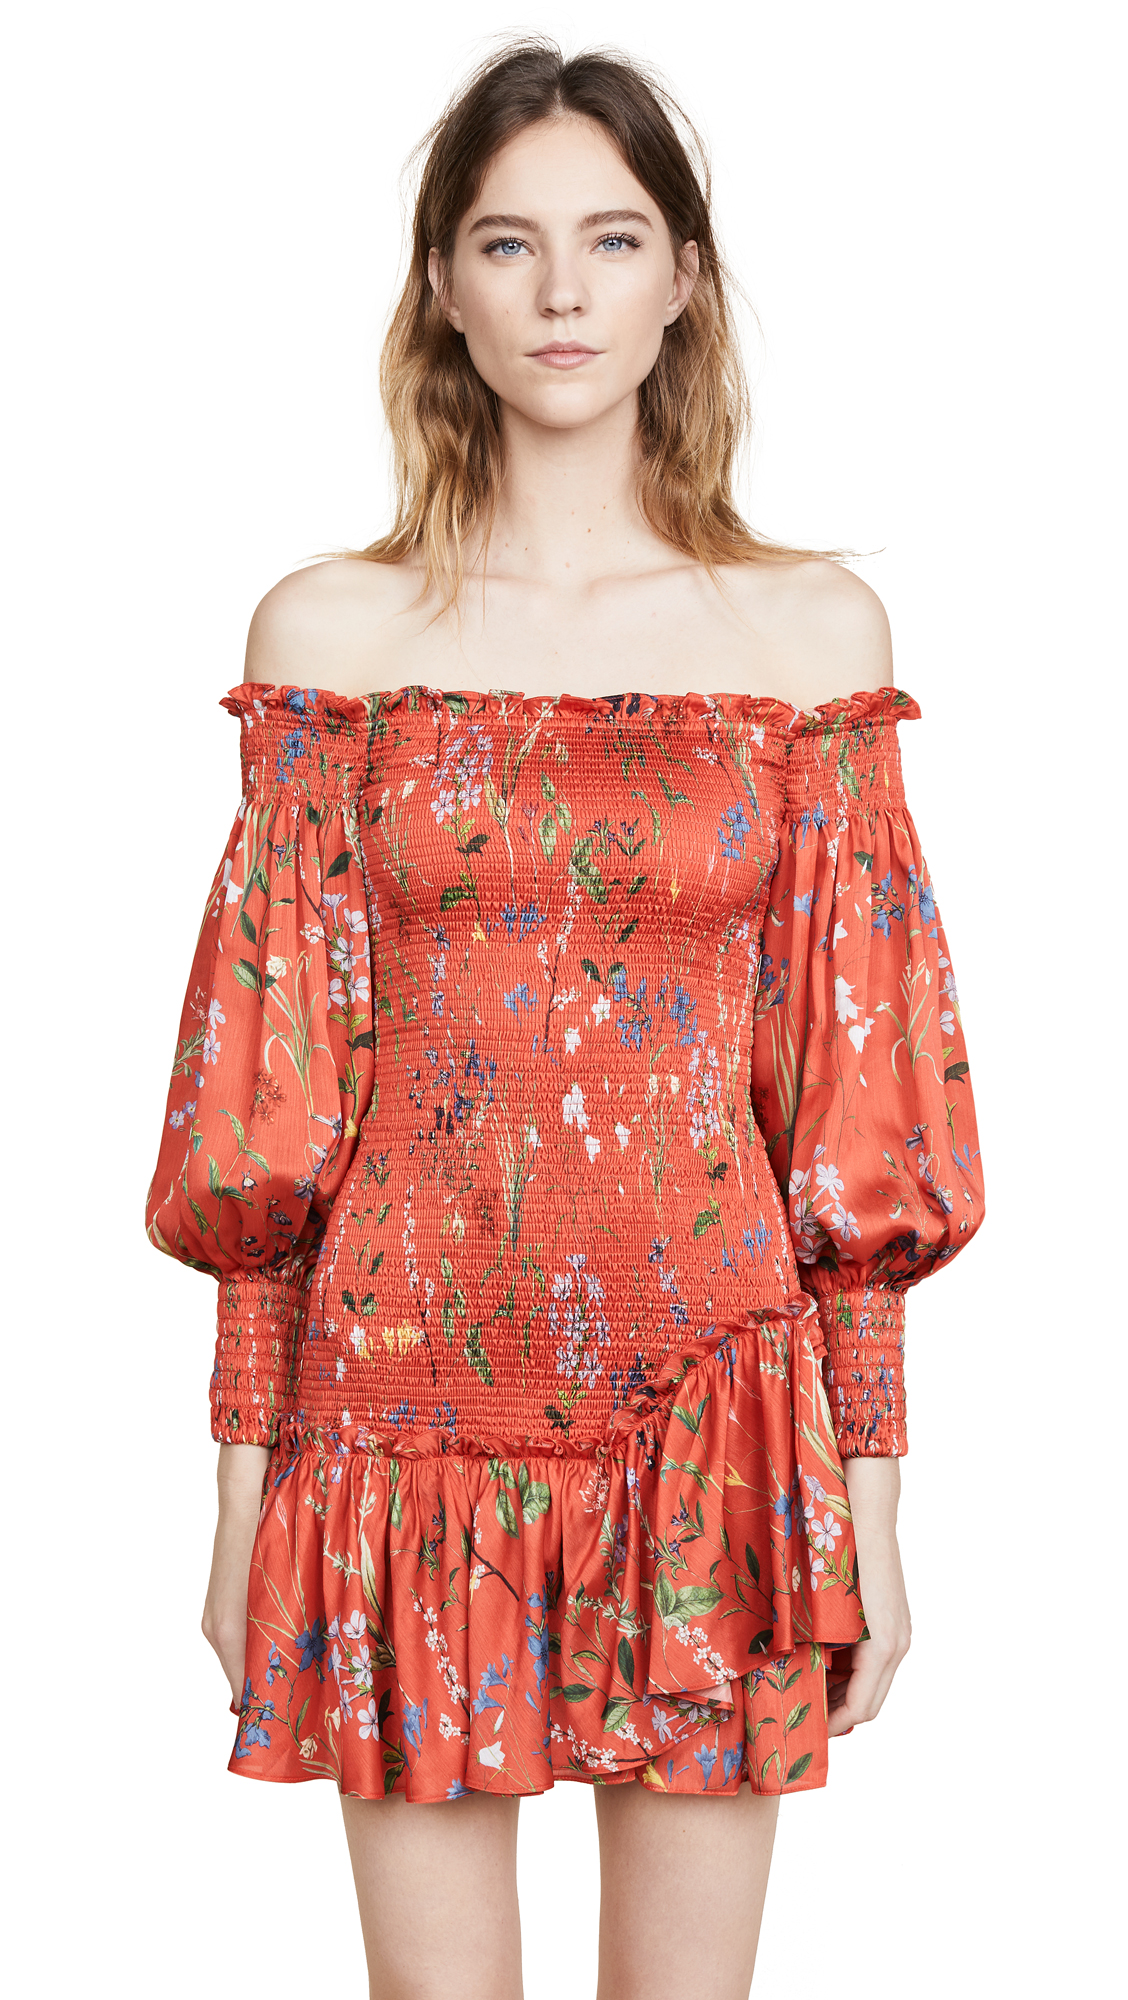 Alexis Gemina Dress - Botanical Red